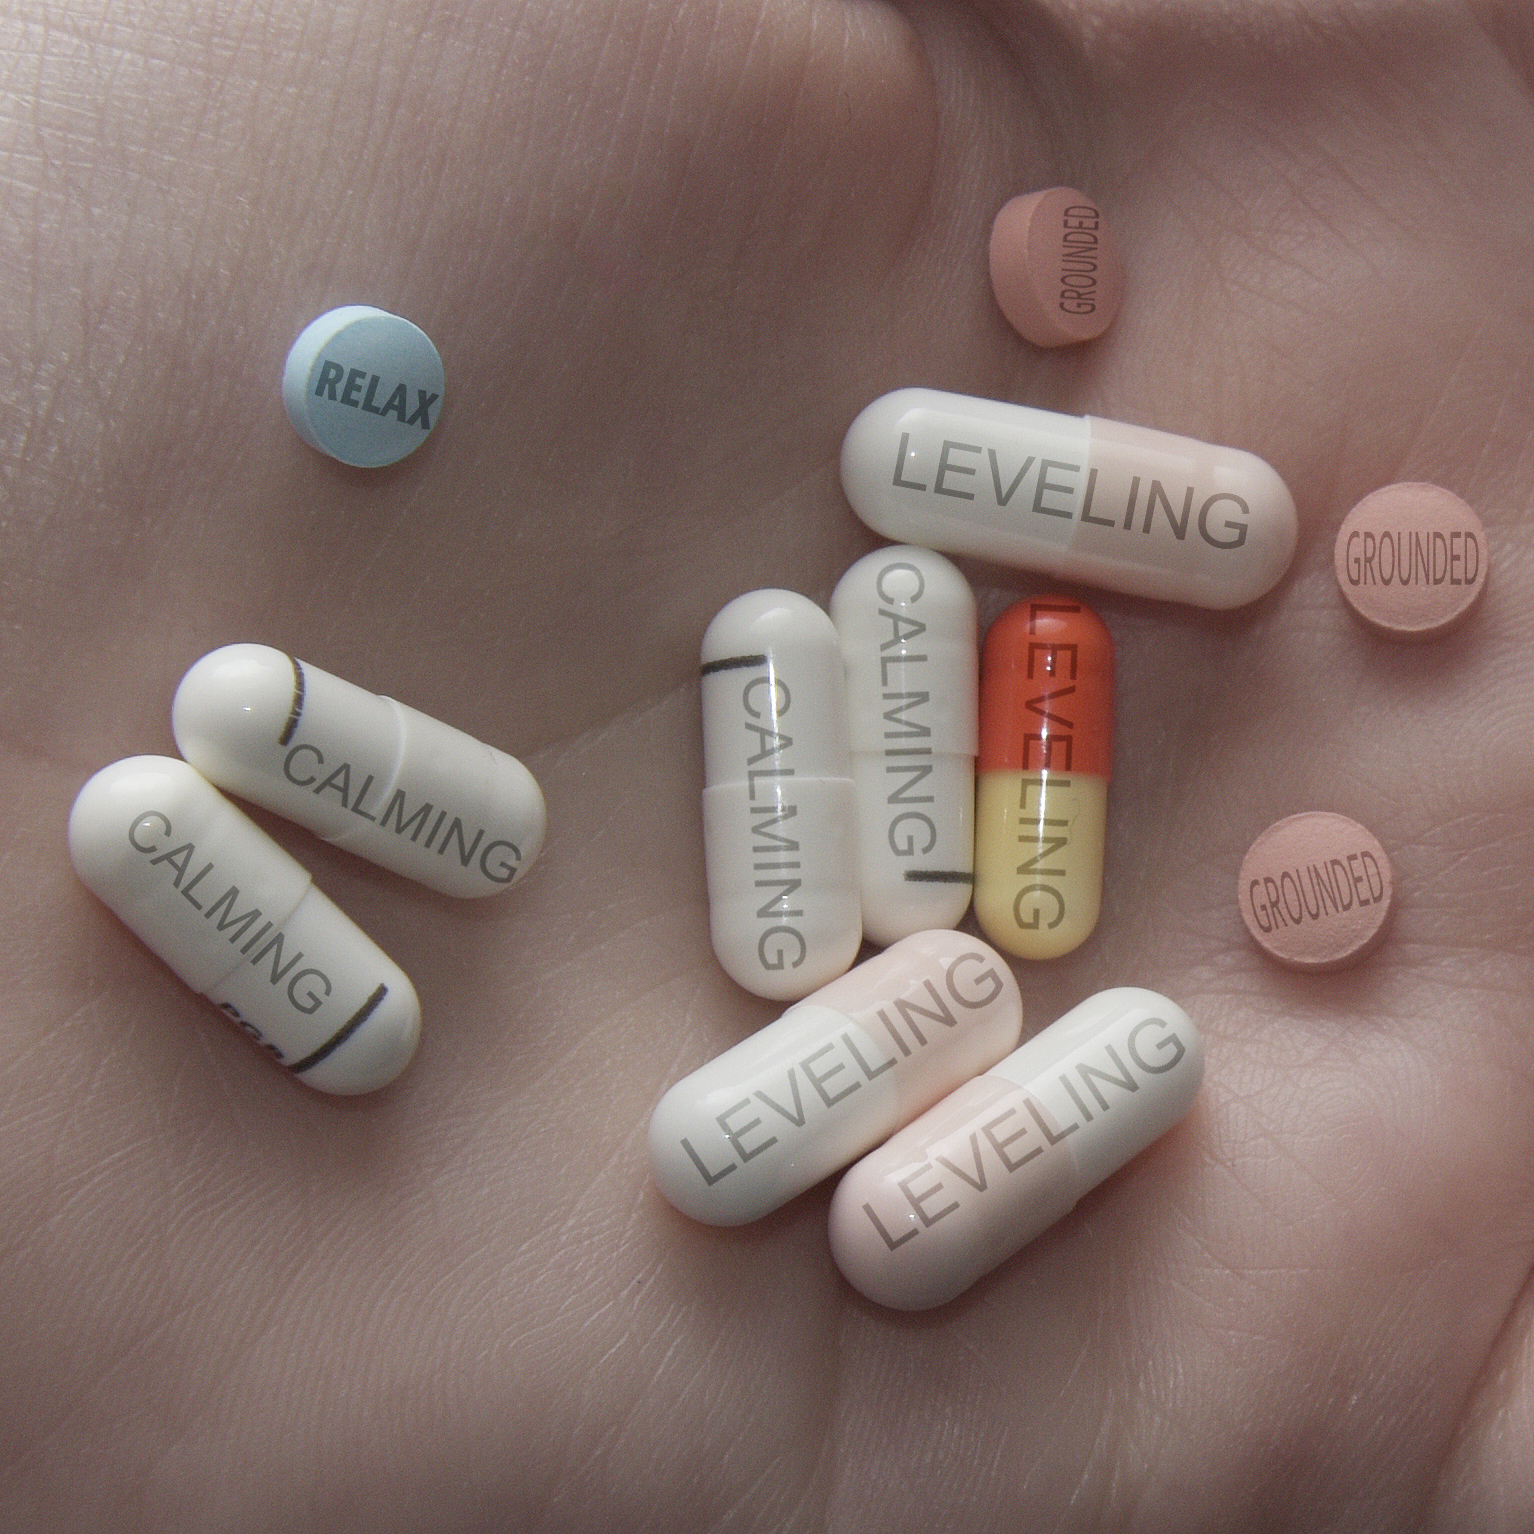 Image of pills, with words like Calming and Levelling on them